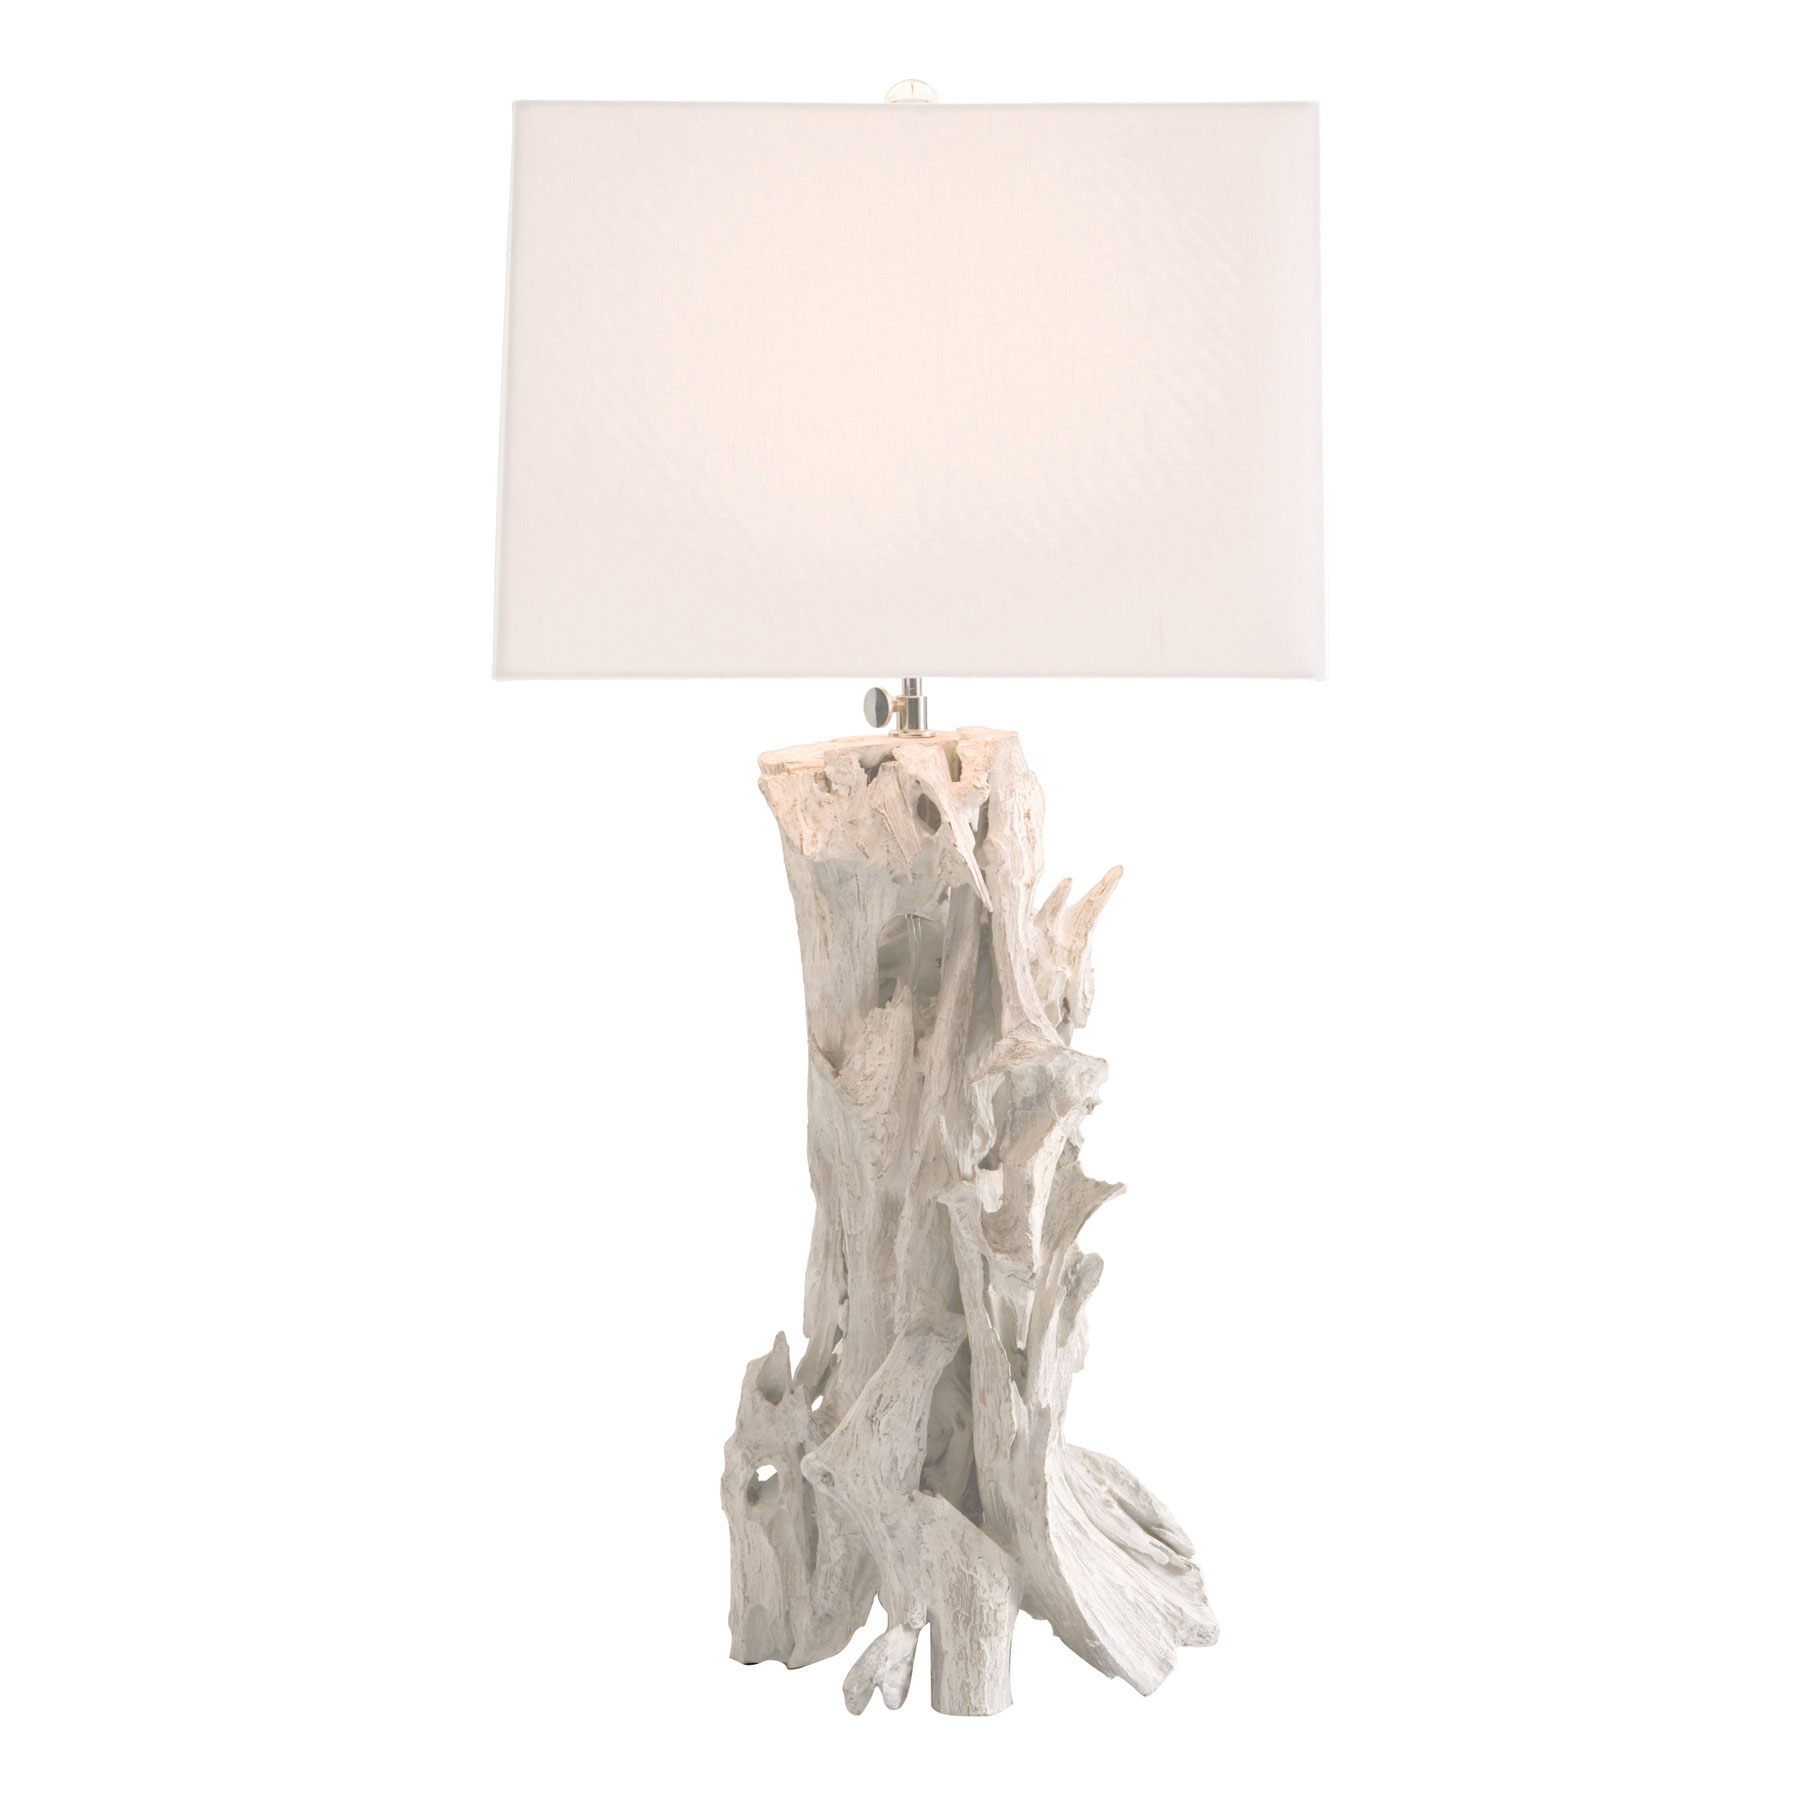 Bodega driftwood floor lamp in white theme for inspiring lighting ideas